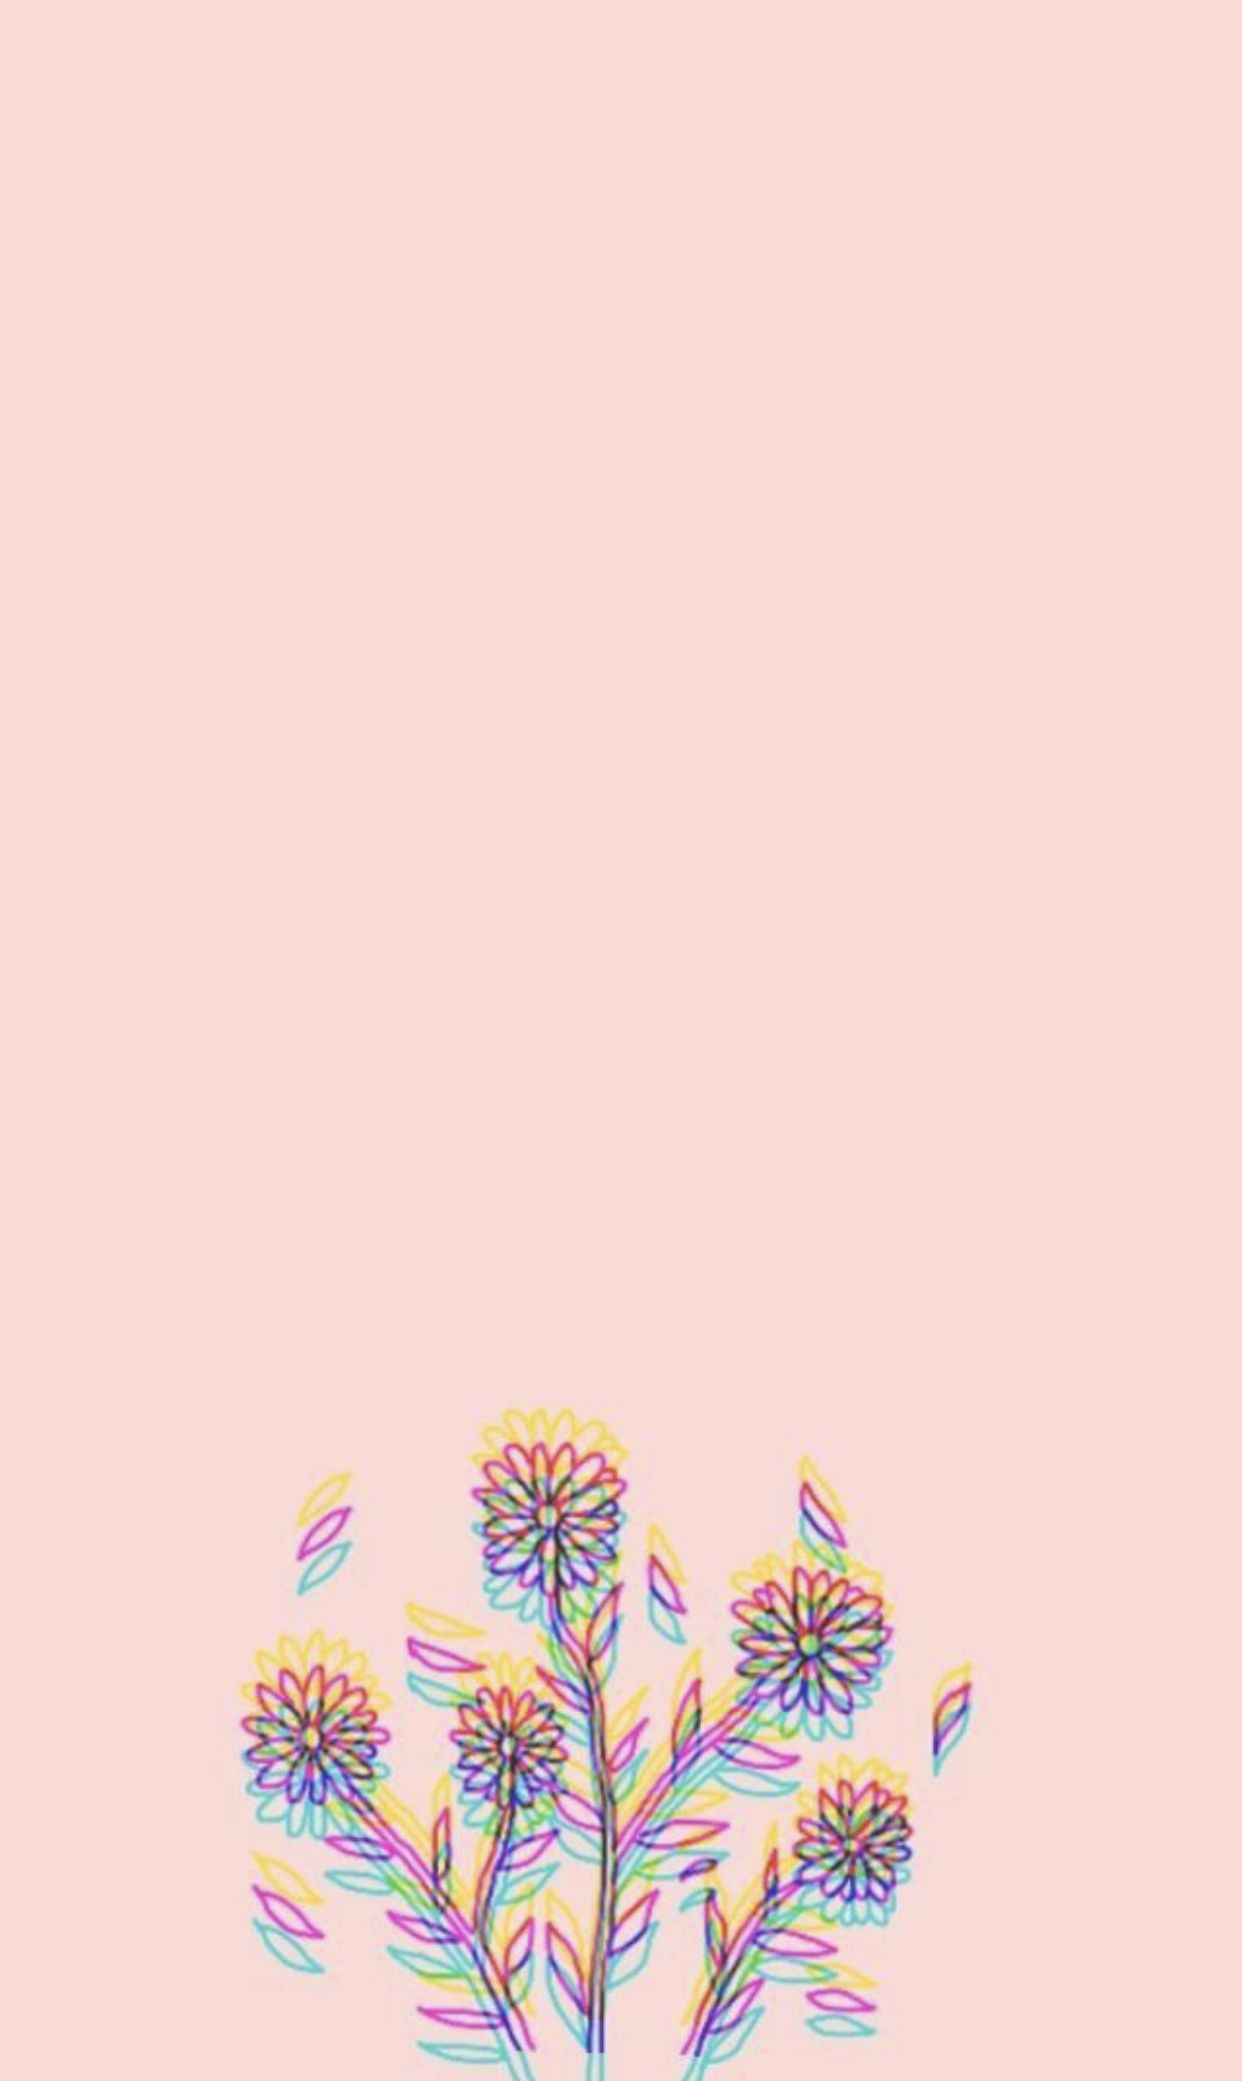 Pin By Cre8tivegeniee On Aesthetic Wallpaper Backgrounds Pink